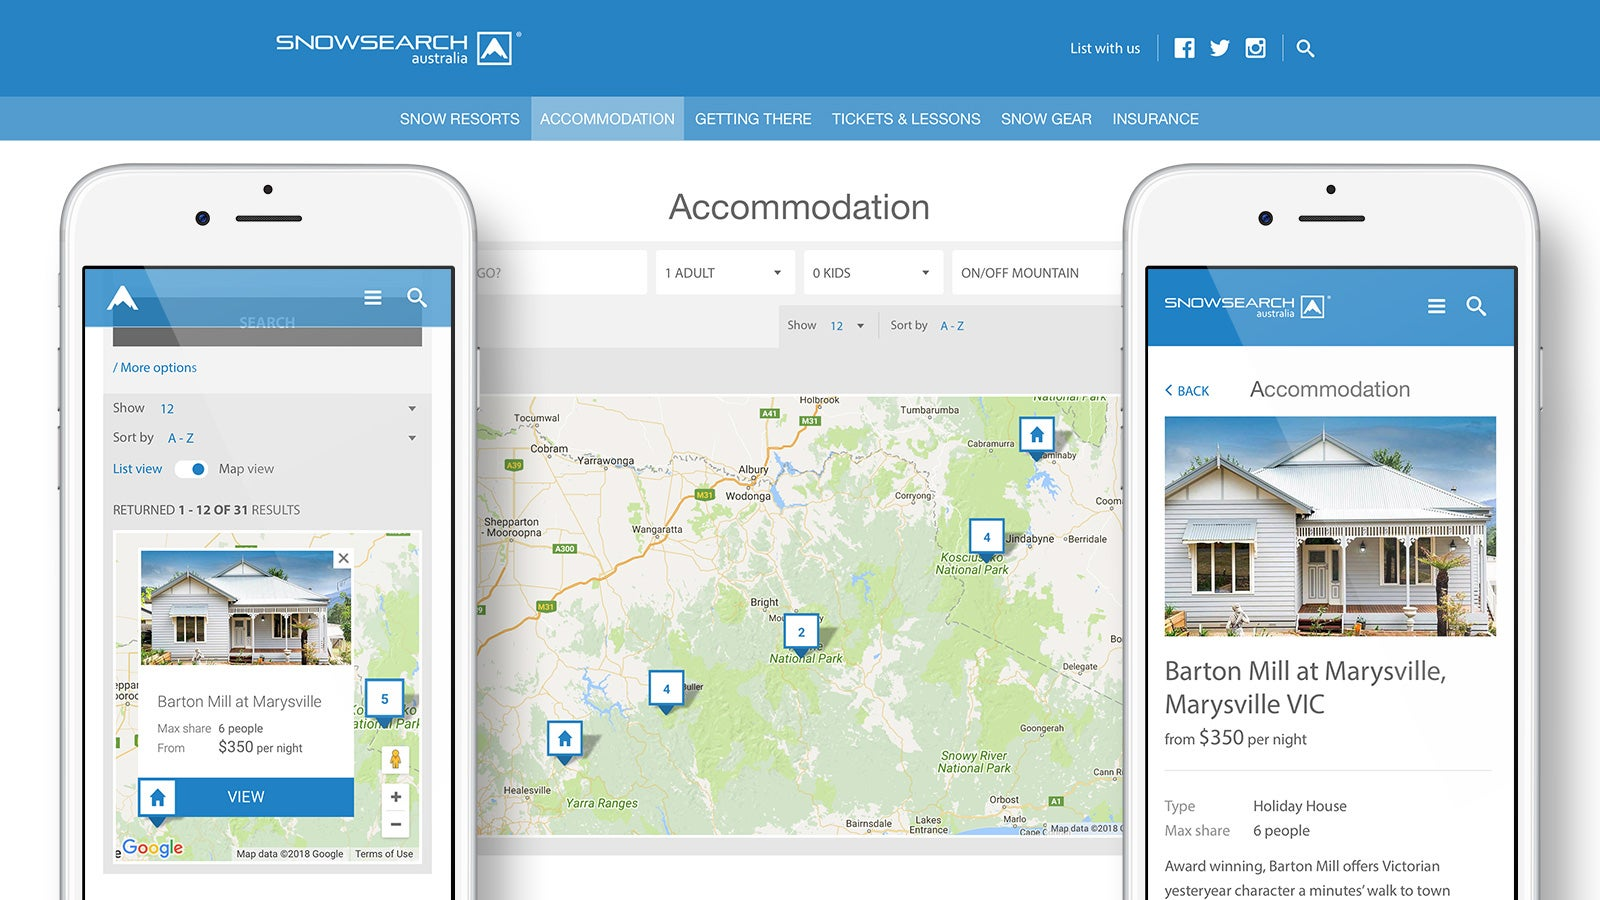 Snowsearch | accommodation page | Devotion